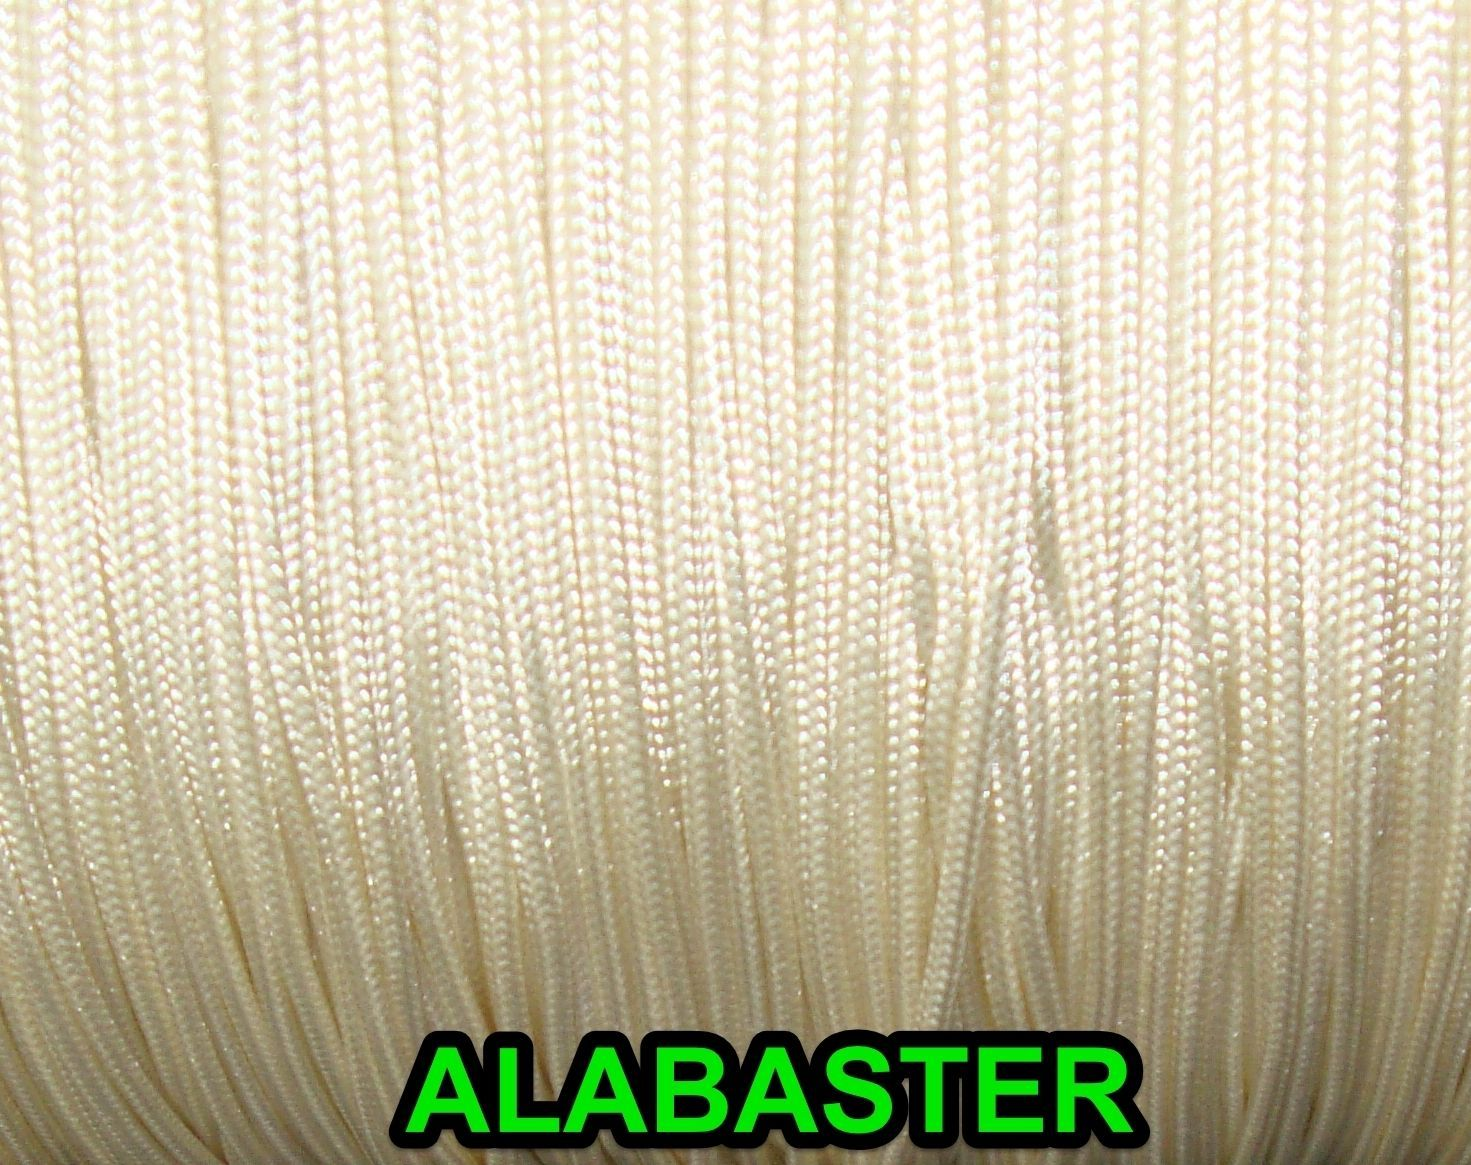 60 FEET:1.8mm ALABASTER LIFT CORD for Blinds, Roman Shades and More